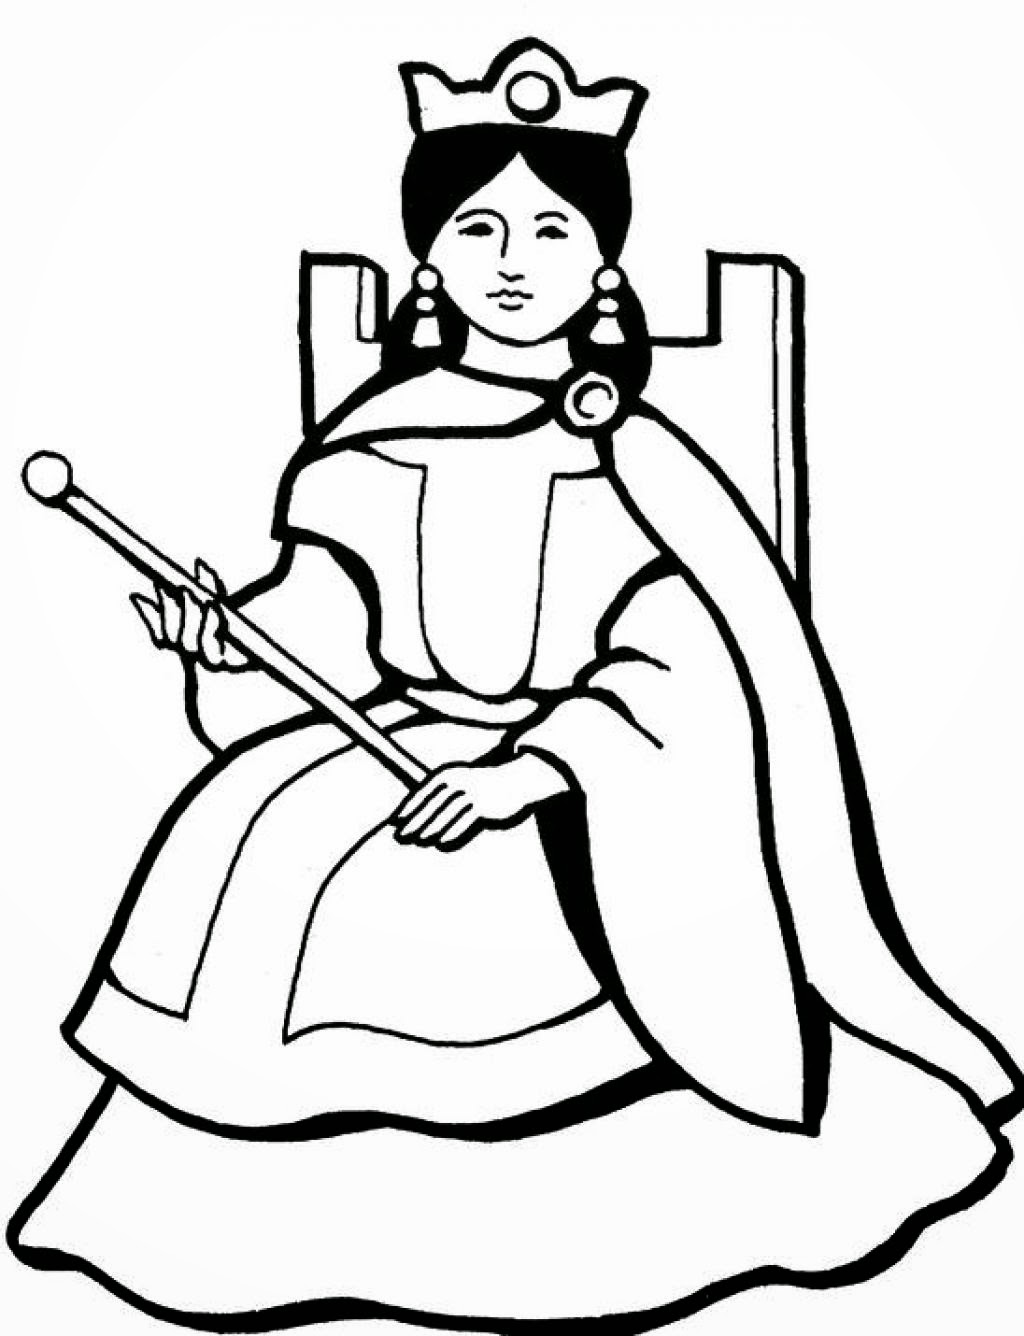 It's just an image of Handy queen coloring pages